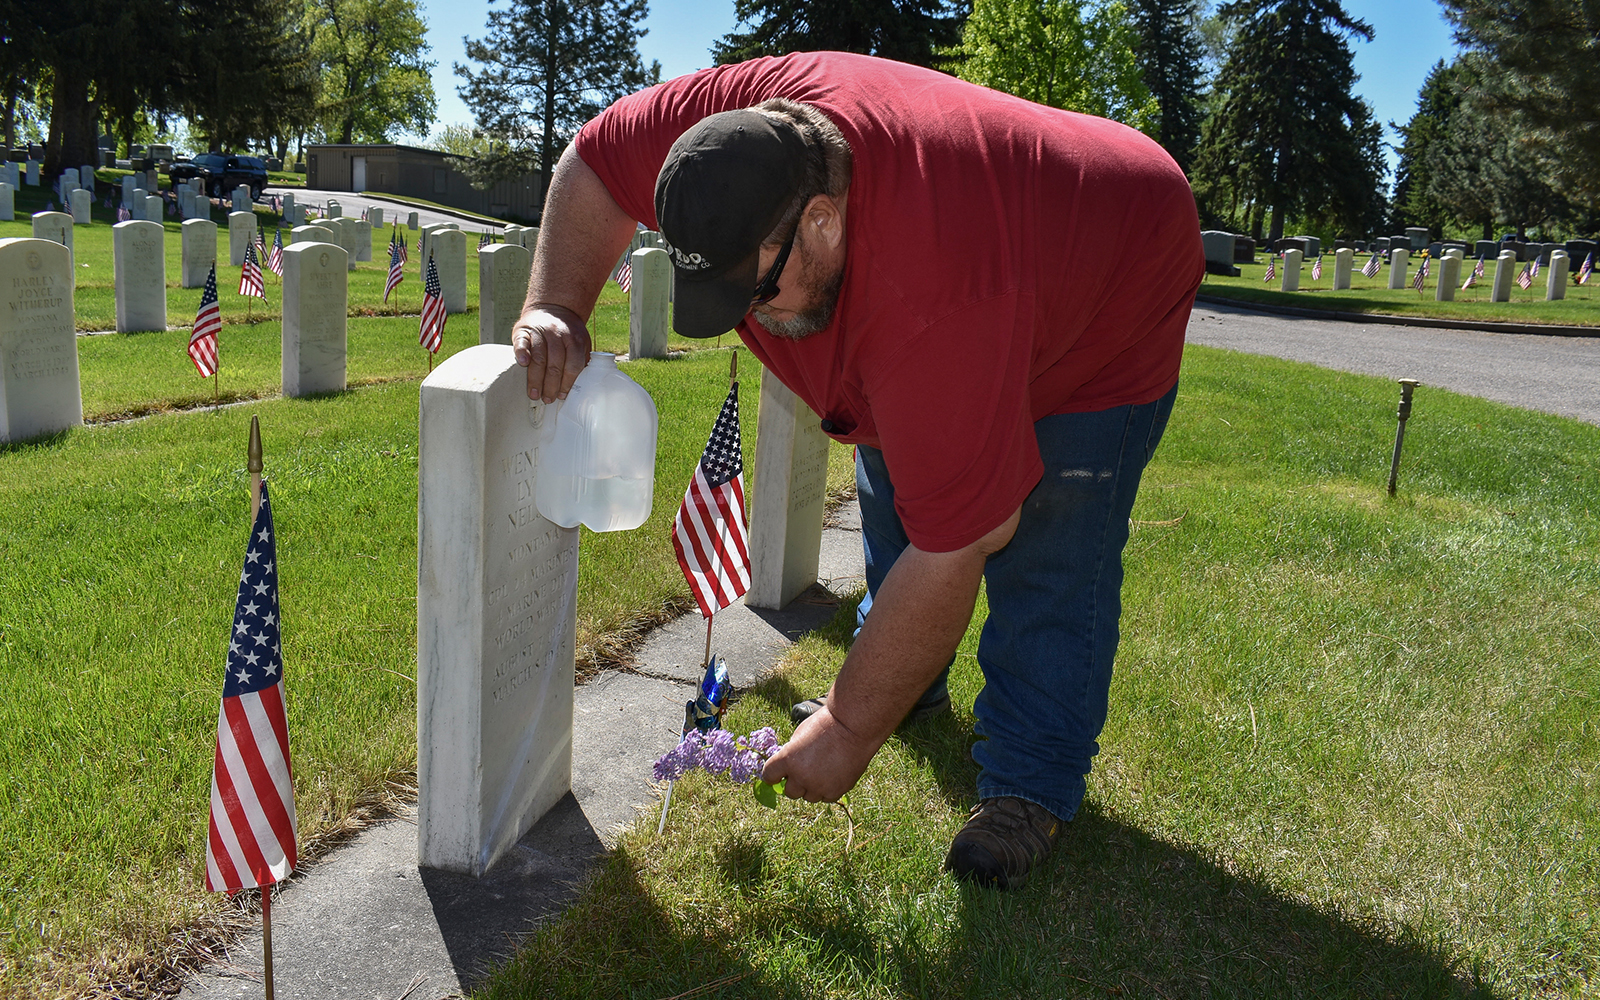 Frank Groblebe places lilacs at the grave of his parents, Frank and Helen Groblebe, at the Mountview Cemetery in Billings, Montana, May 25, 2020. (AP/Matthew Brown)